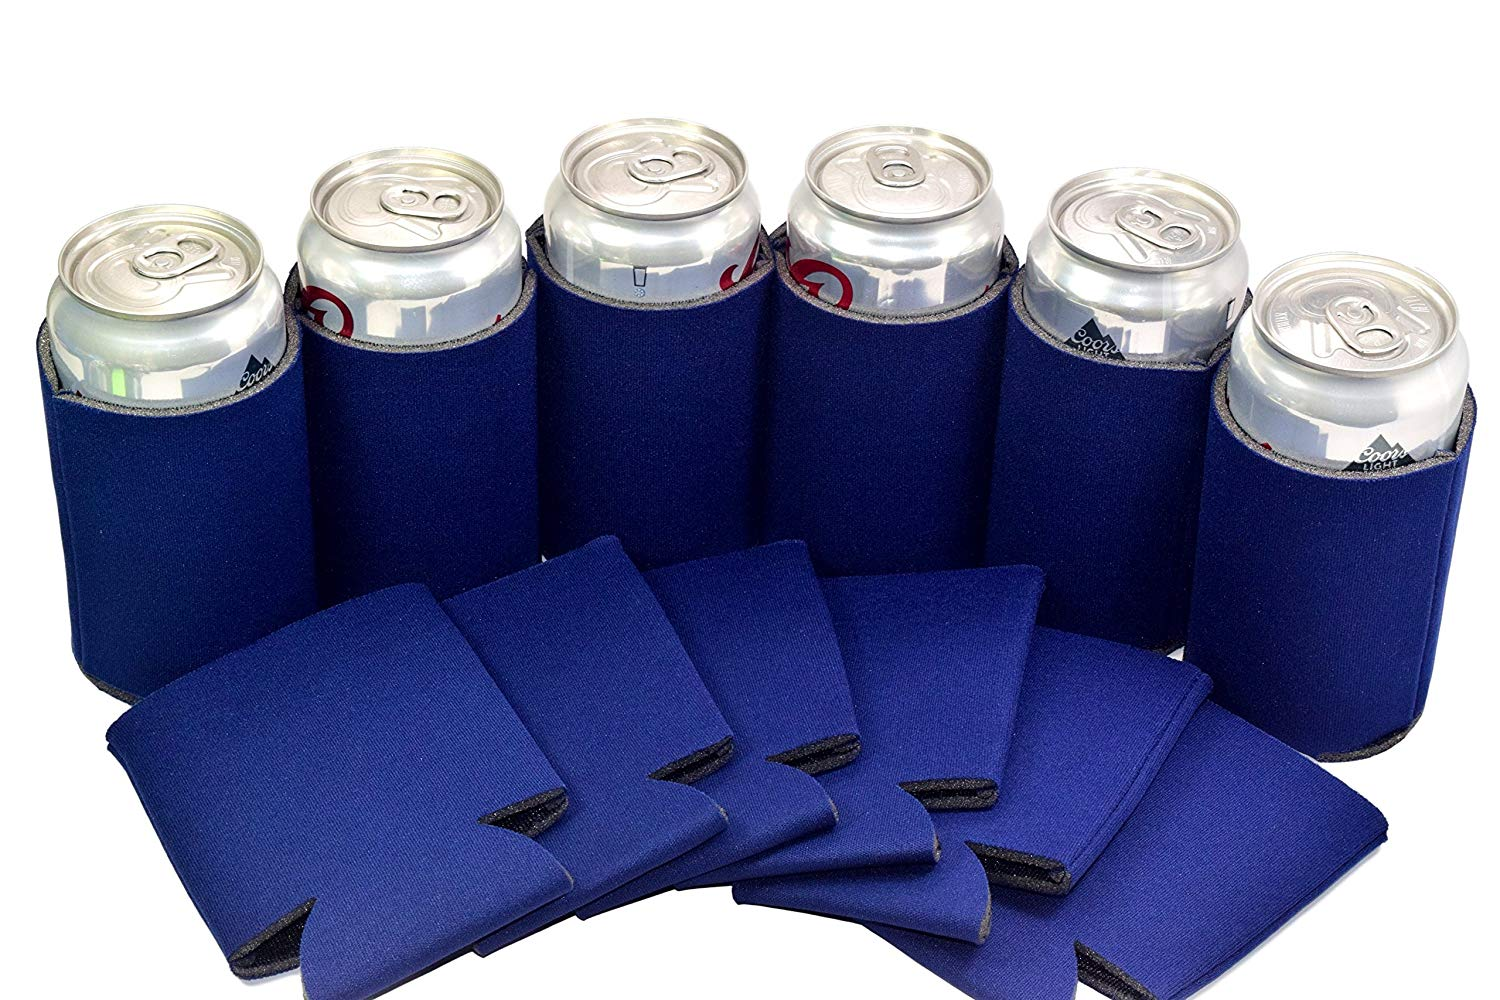 QualityPerfection 12 Navy Blue Blank Can Cooler Sleeve, Coolie For Can,Beer,Soft Drink,Economy Bulk,Collapsible Insulator,Good 4 Wedding,Parties